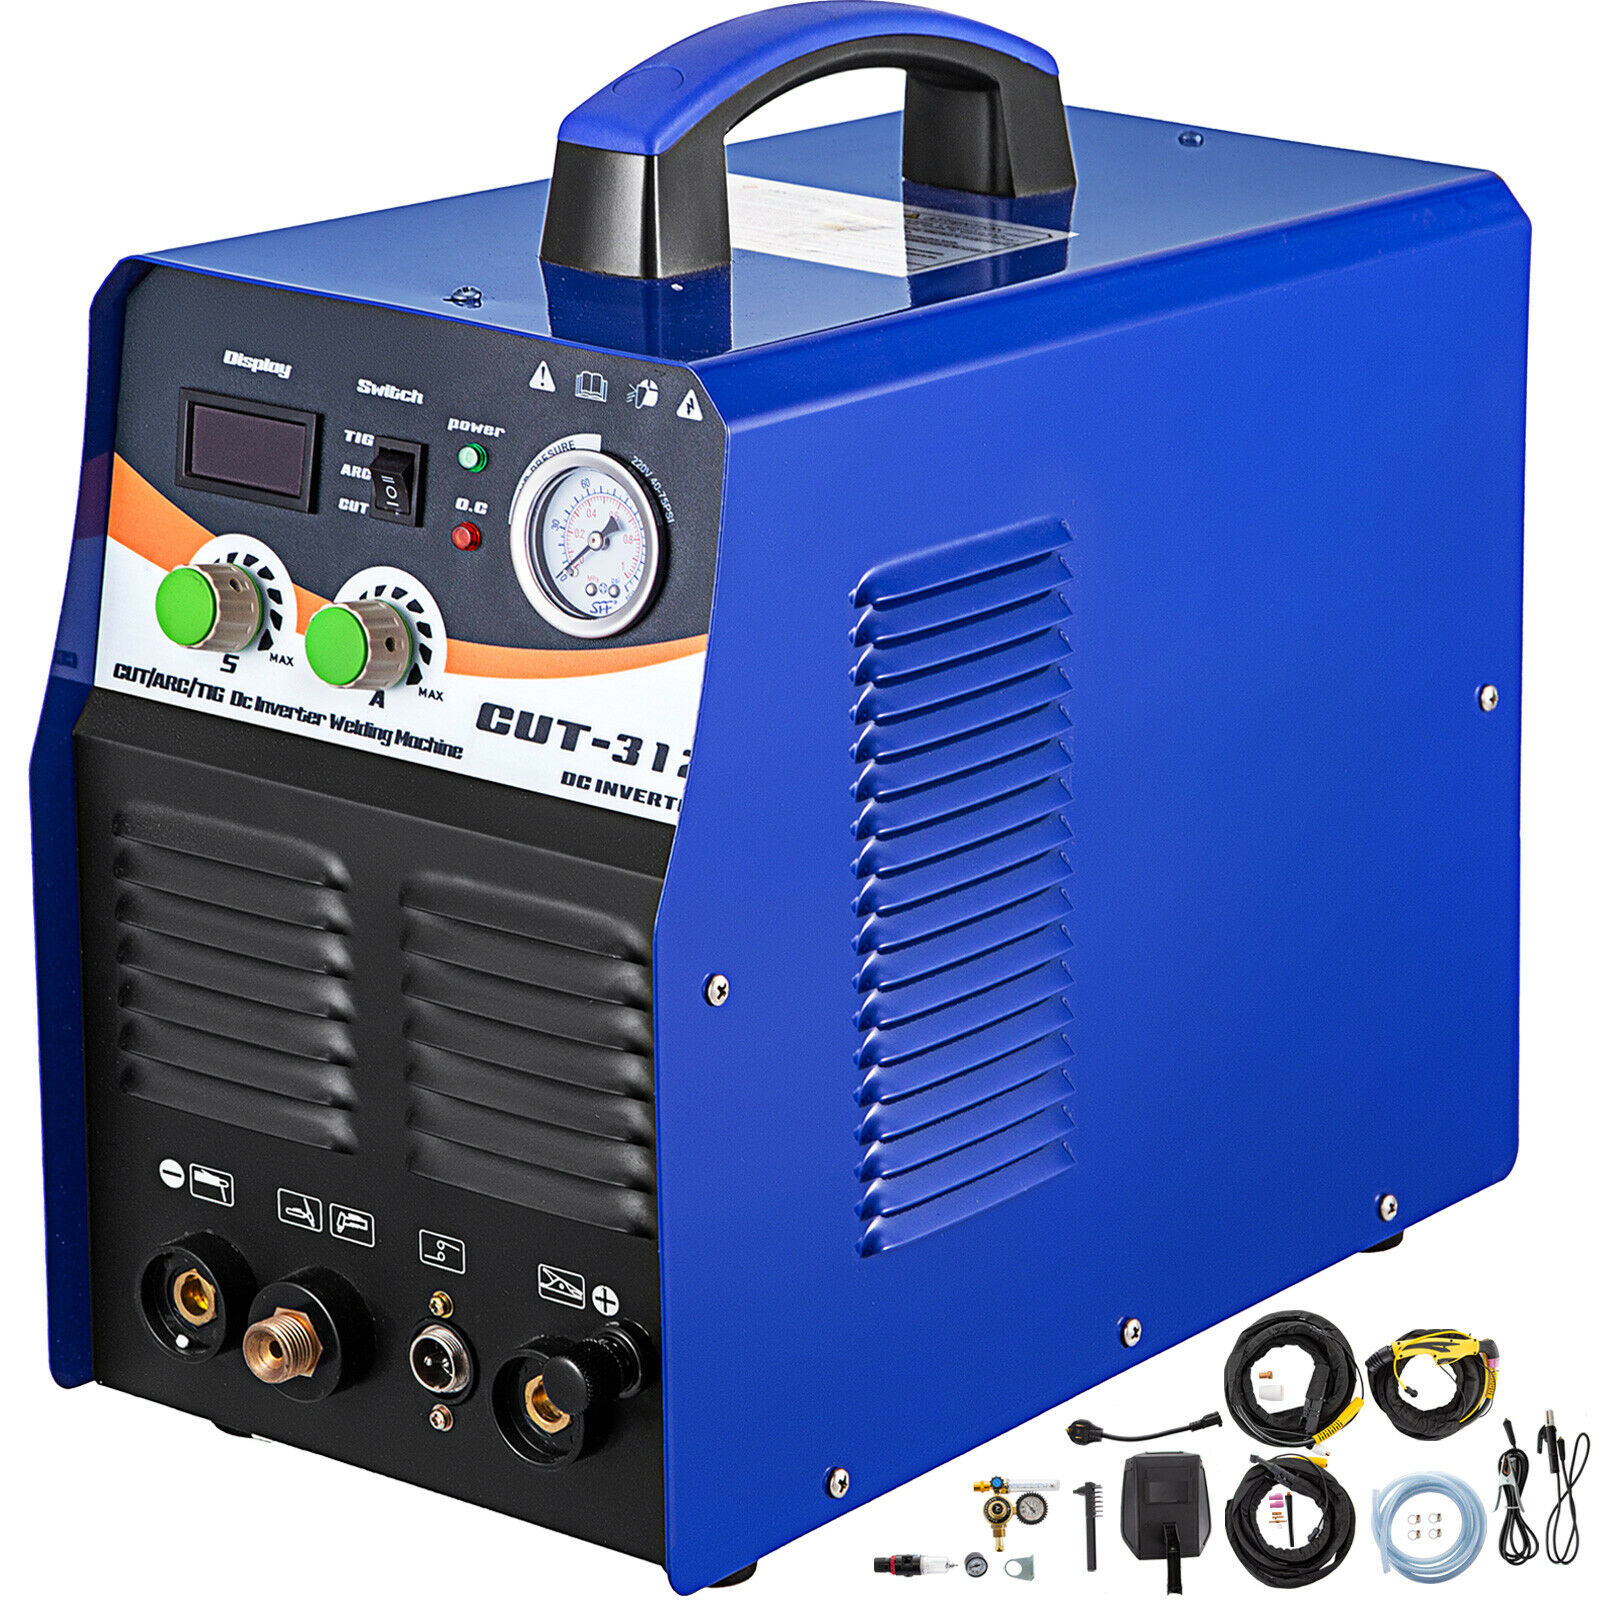 Plasma Cutter Tig Welder CT312 TIG MMA 3 In 1 Non-Touch Pilot Arc Torch 110/220V. Buy it now for 260.97